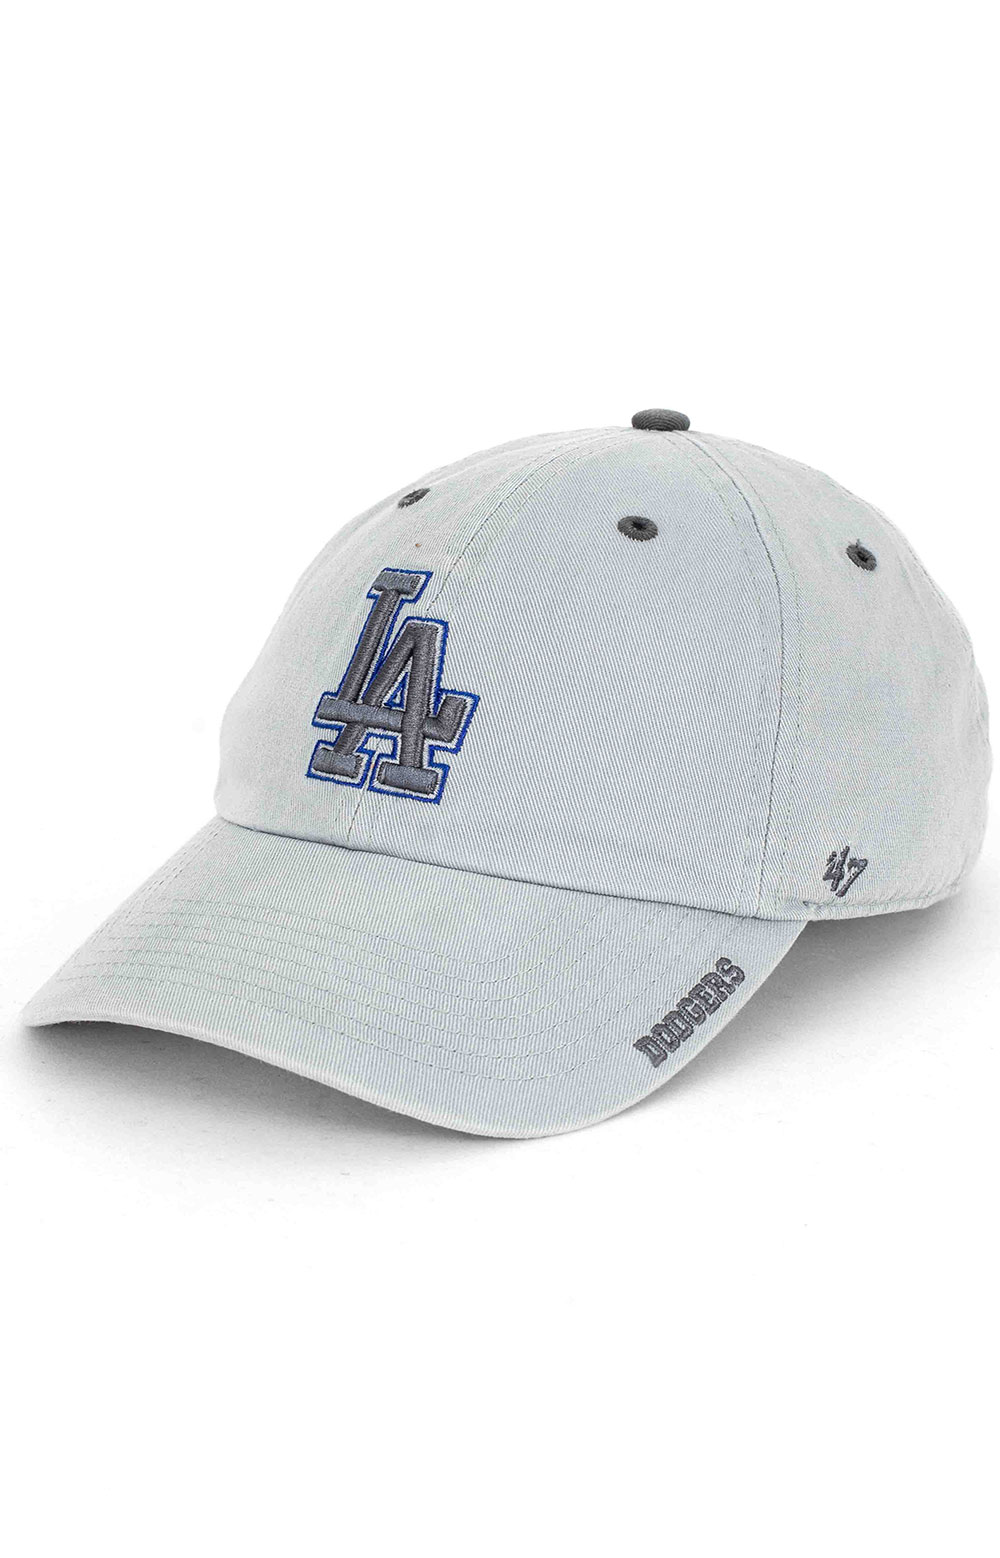 Los Angeles Dodgers 47 Clean Up Cap - Storm Ice